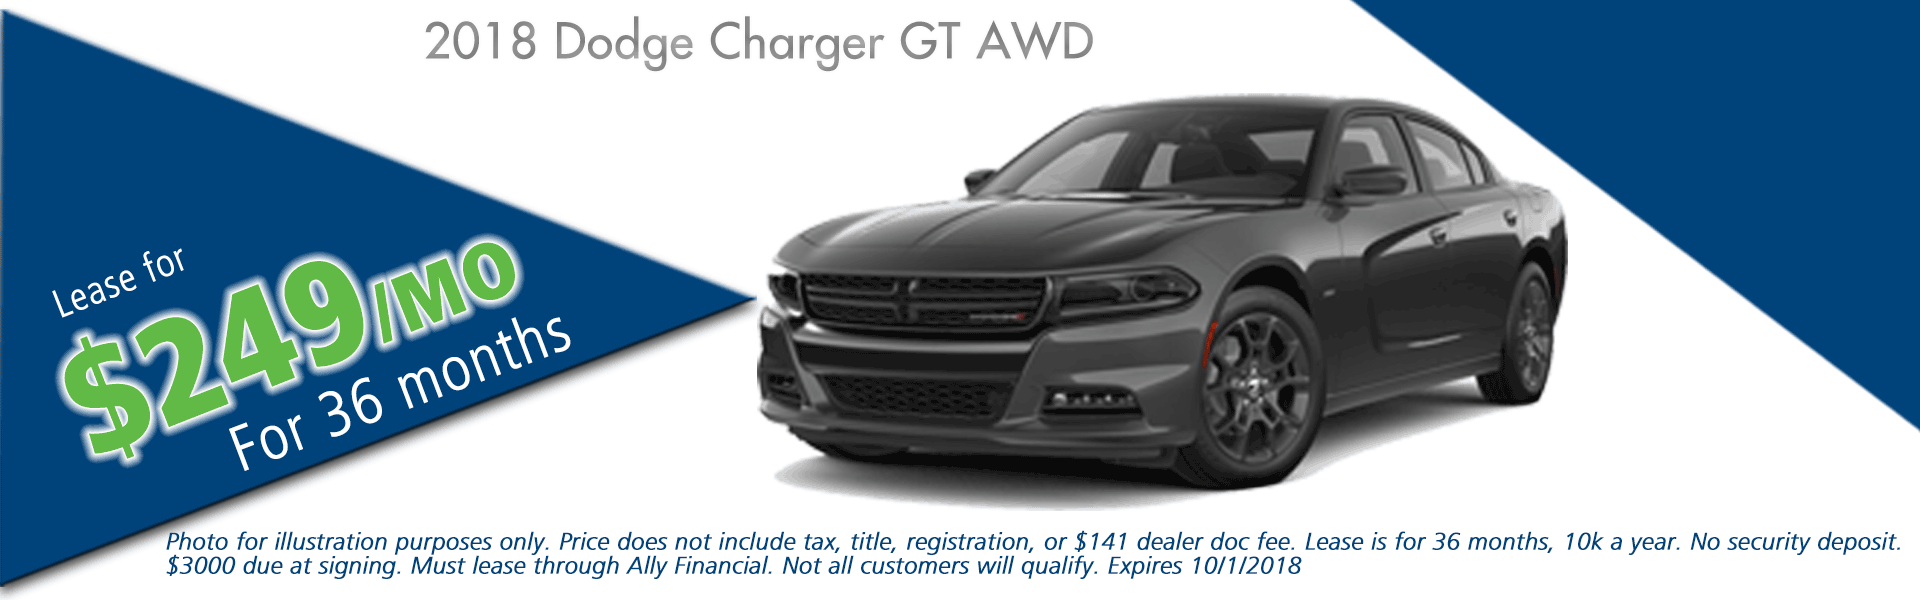 CarRight Chrysler Jeep Dodge Ram, Moon Township, PA Sales Service Body Shop PartsNEW 2018 DODGE CHARGER GT AWD